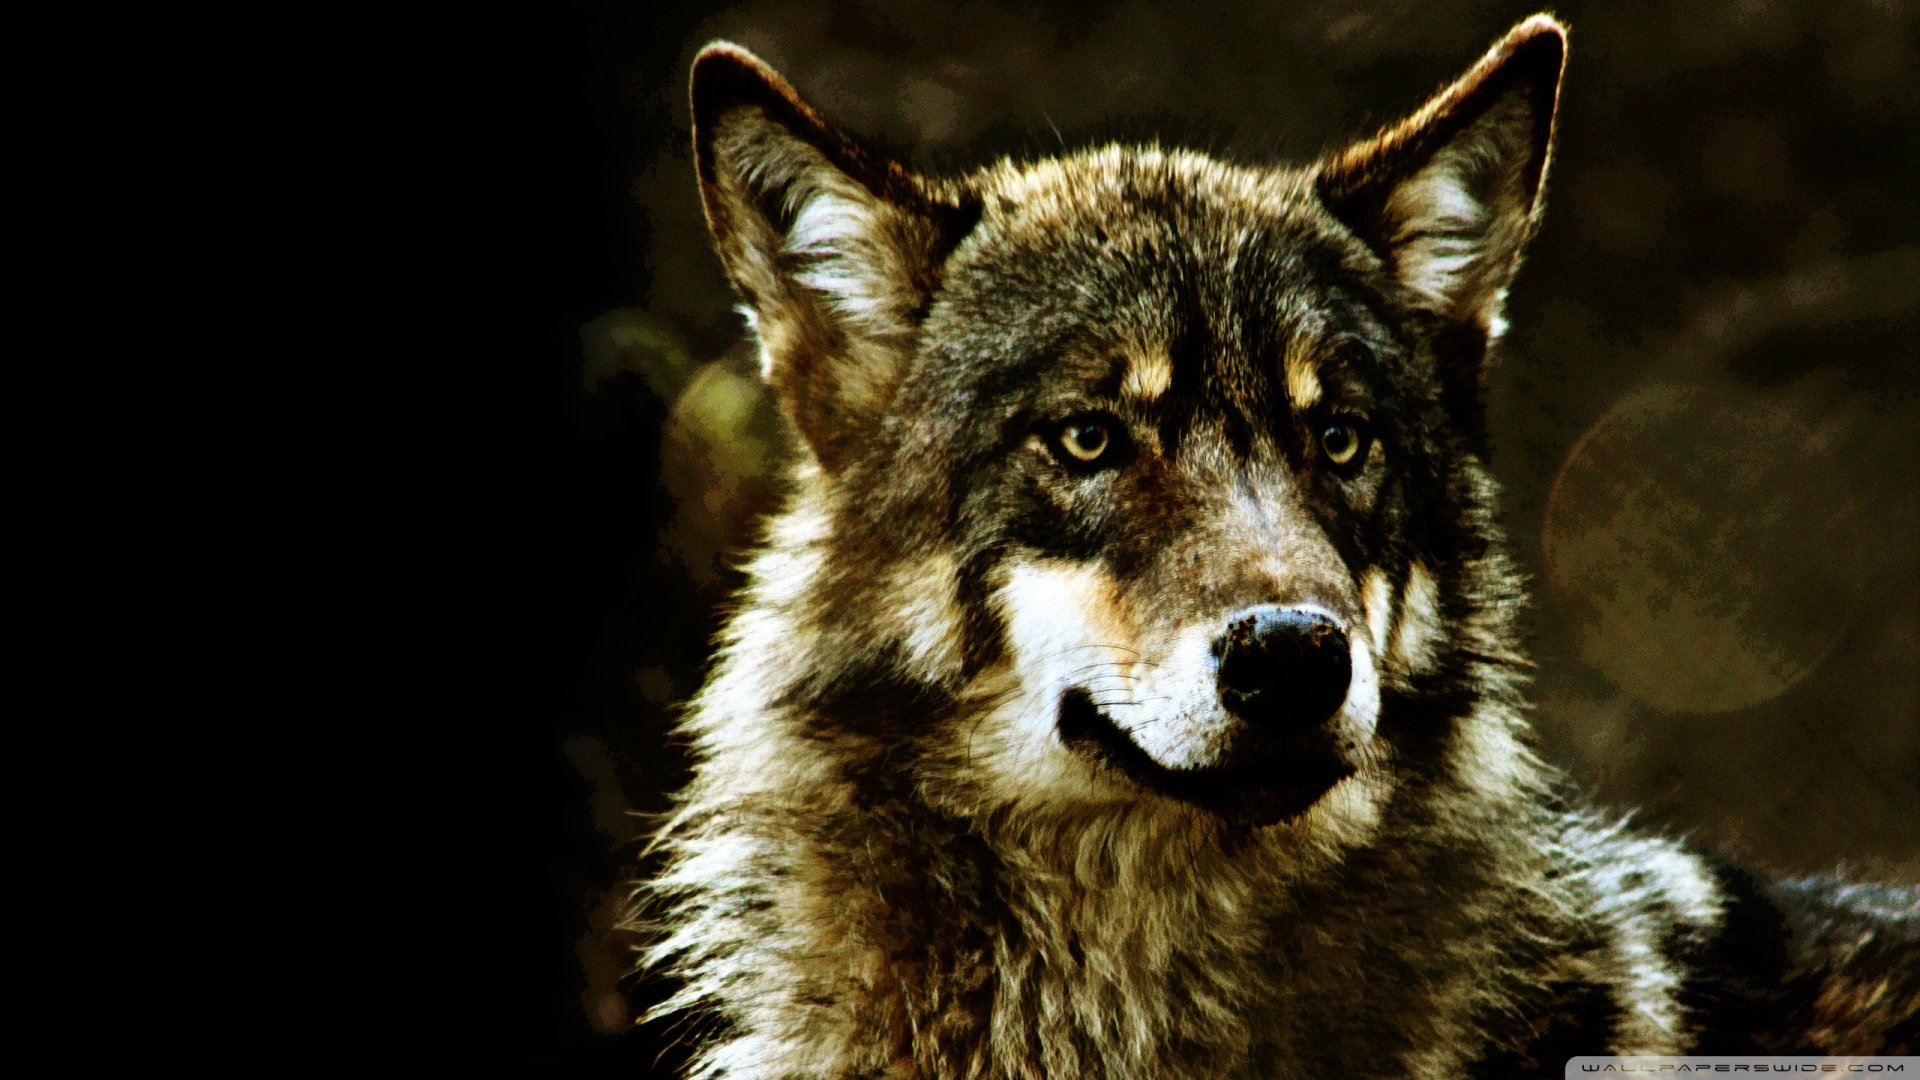 Wolf Wallpapers Hd   Desktop Backgrounds 1920x1080